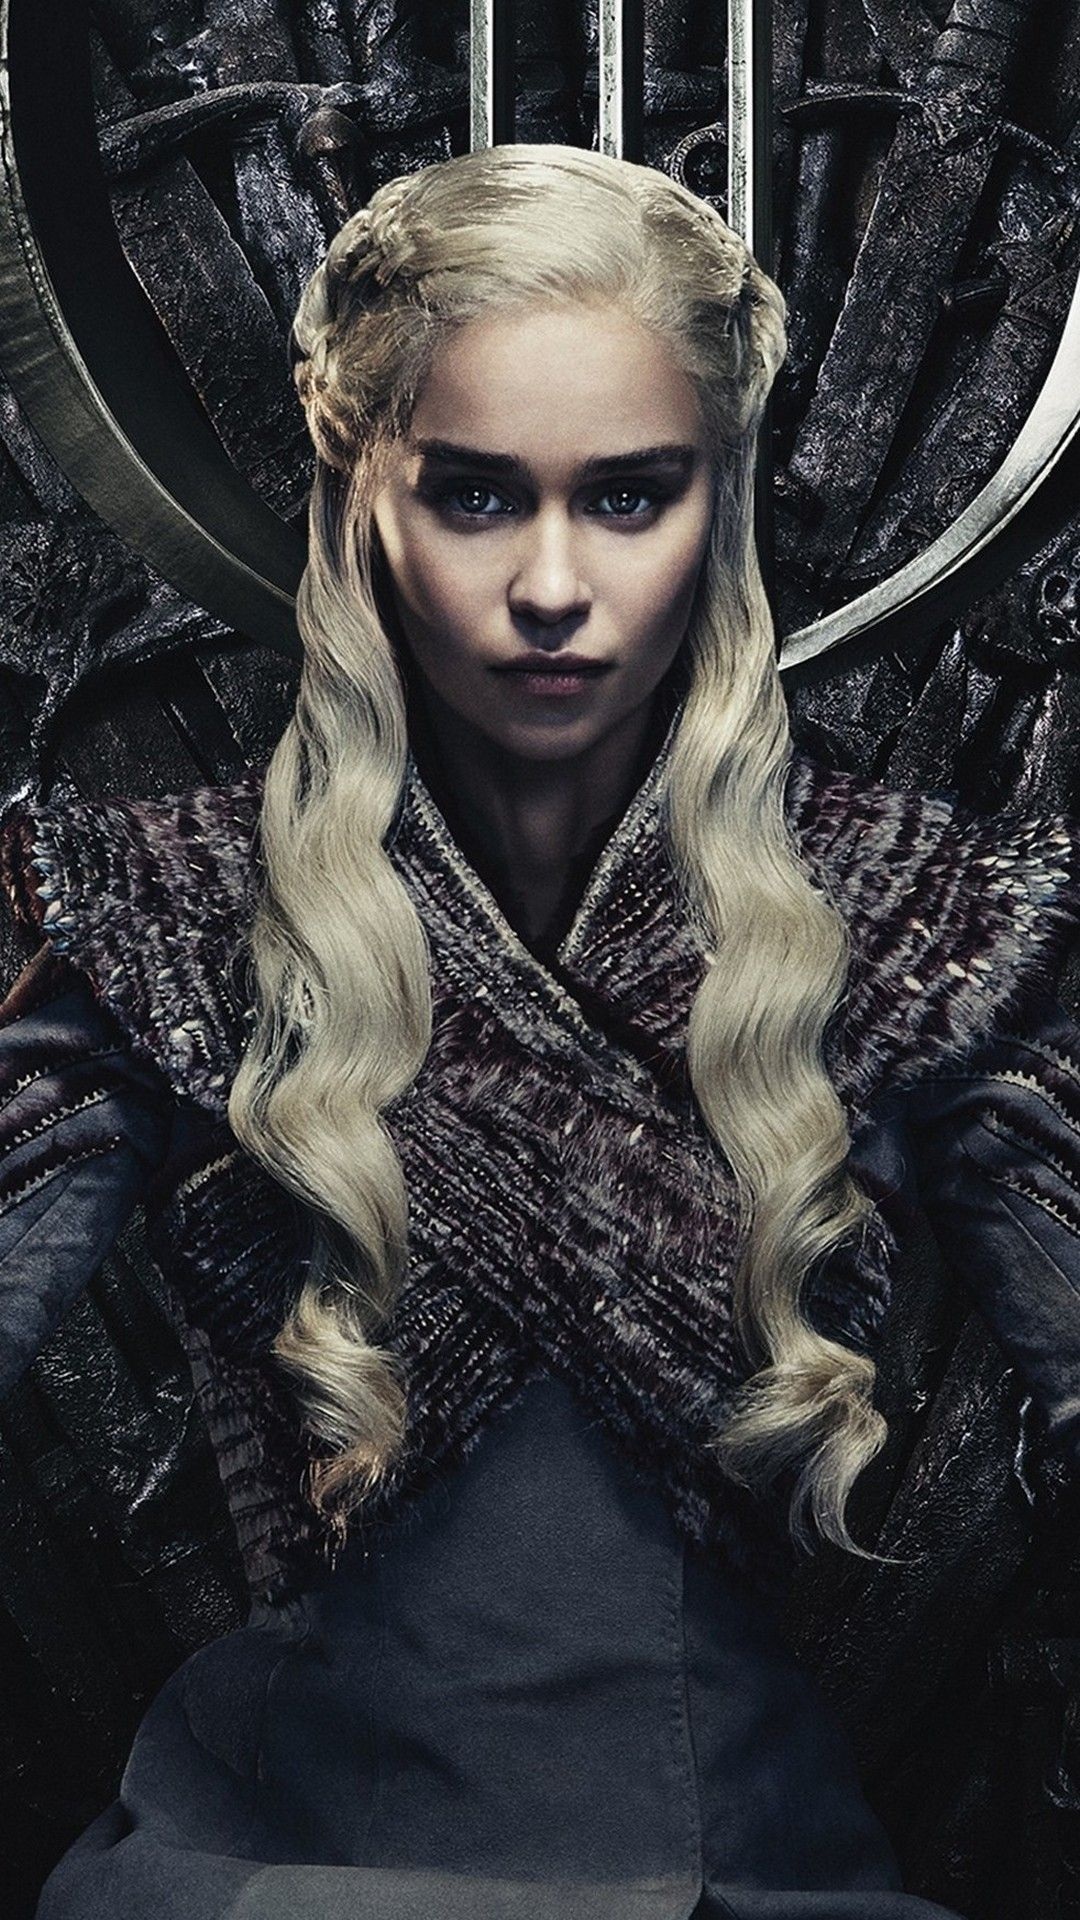 Game Of Thrones 8 Season Wallpaper For Iphone Best Iphone Wallpaper Mother Of Dragons Game Of Thrones Costumes Game Of Thrones Artwork Game of thrones wallpaper for iphone 8